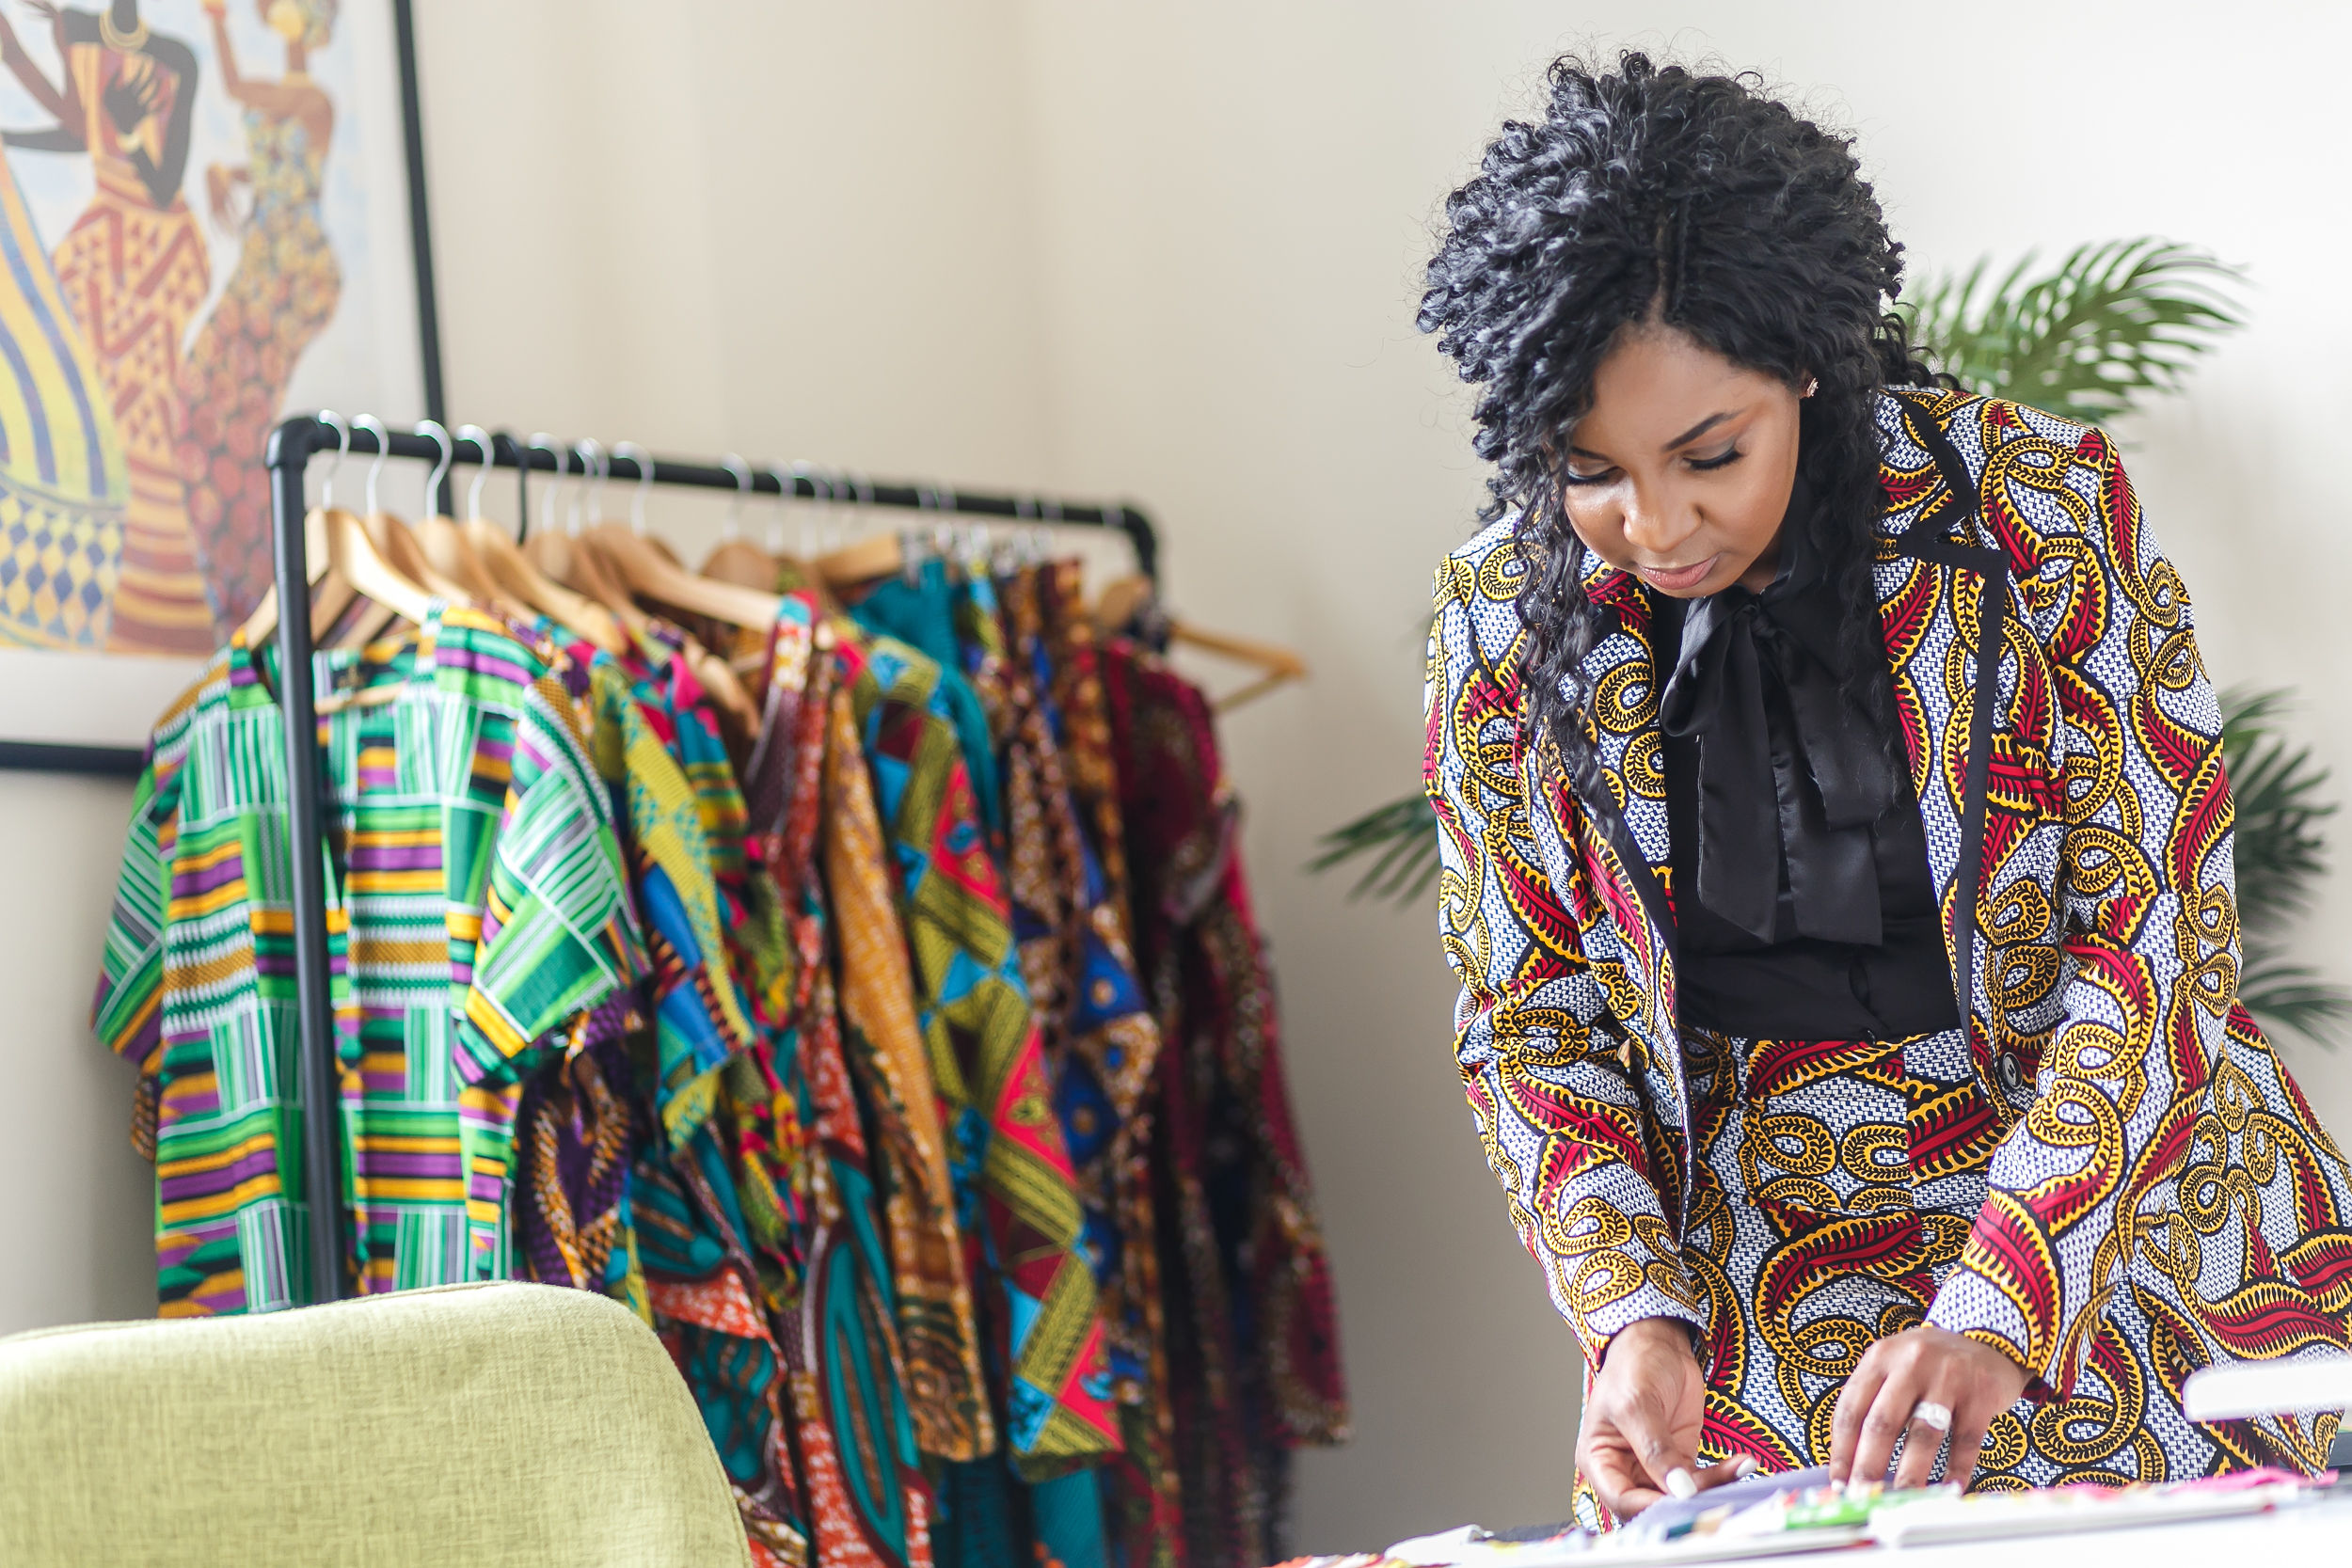 D'IYANU's CEO, Addie Elabor on the Shop Black Movement and Cultural Appropriation vs Cultural Appreciation